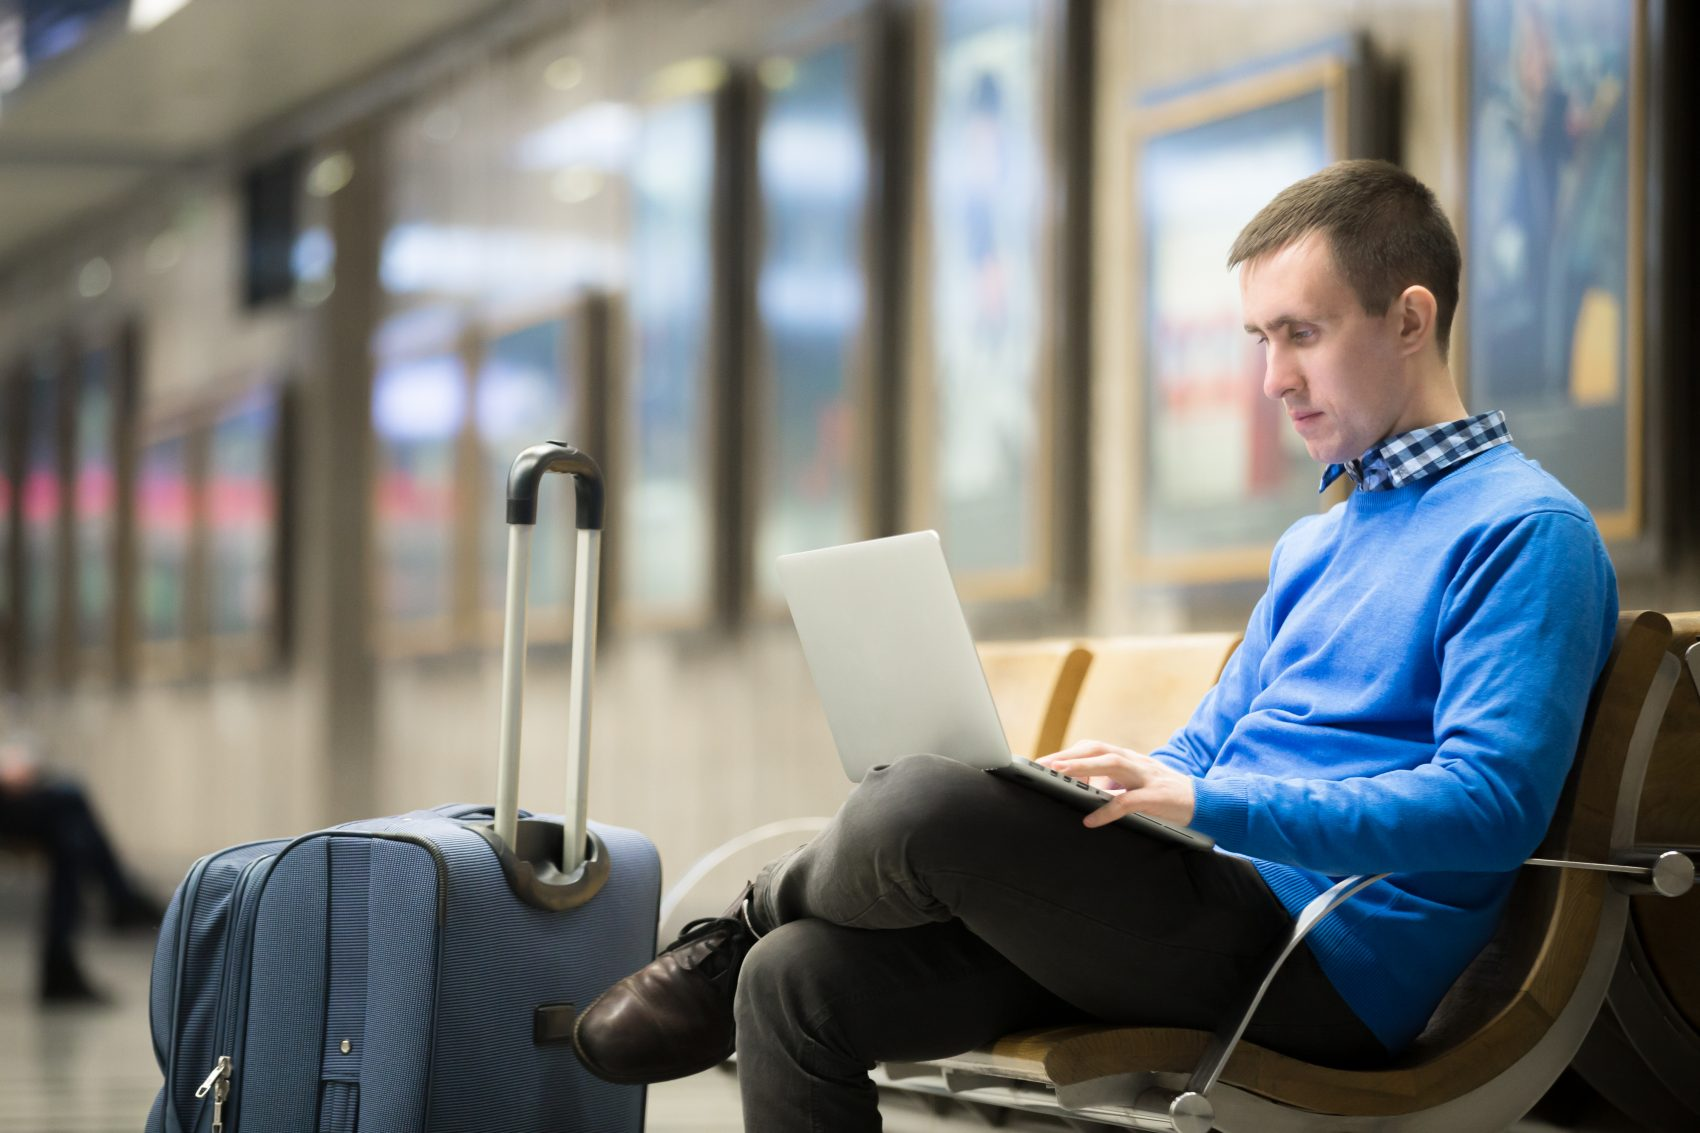 Man sitting at airport doing work - BYOD policy